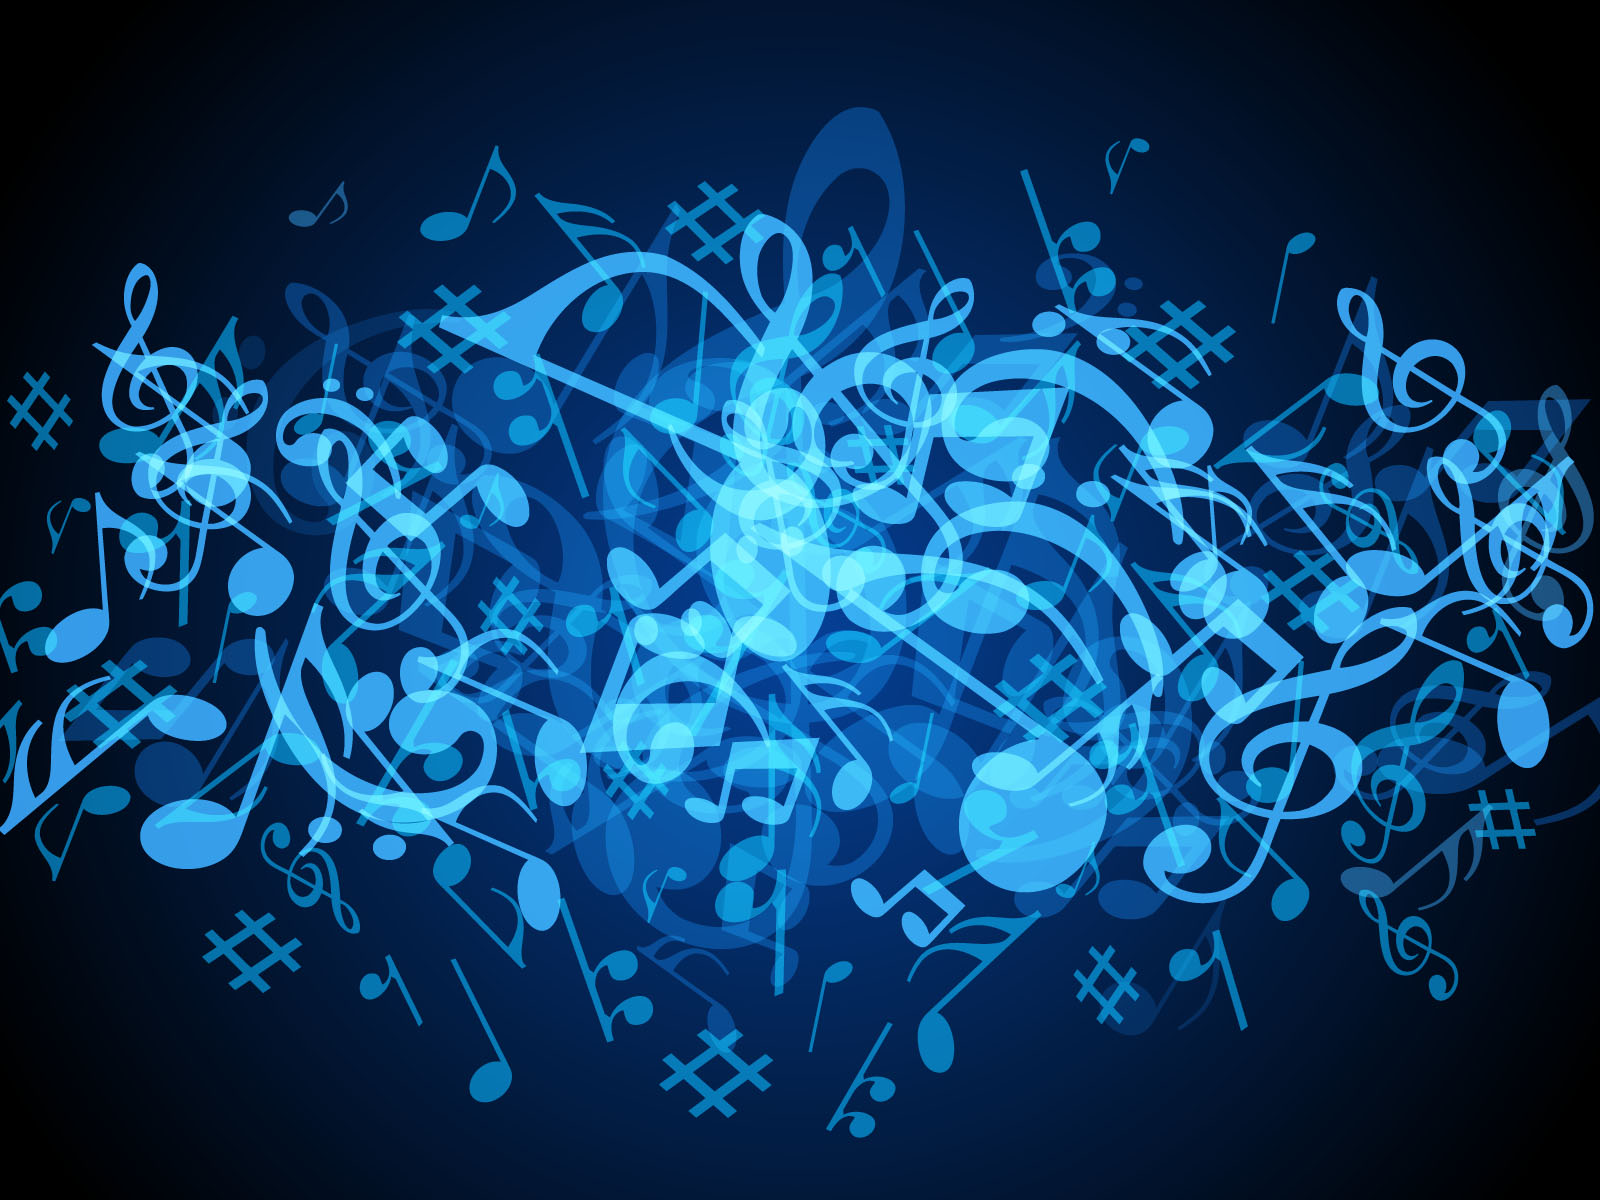 Free Music Background Images Wallpaper Cave